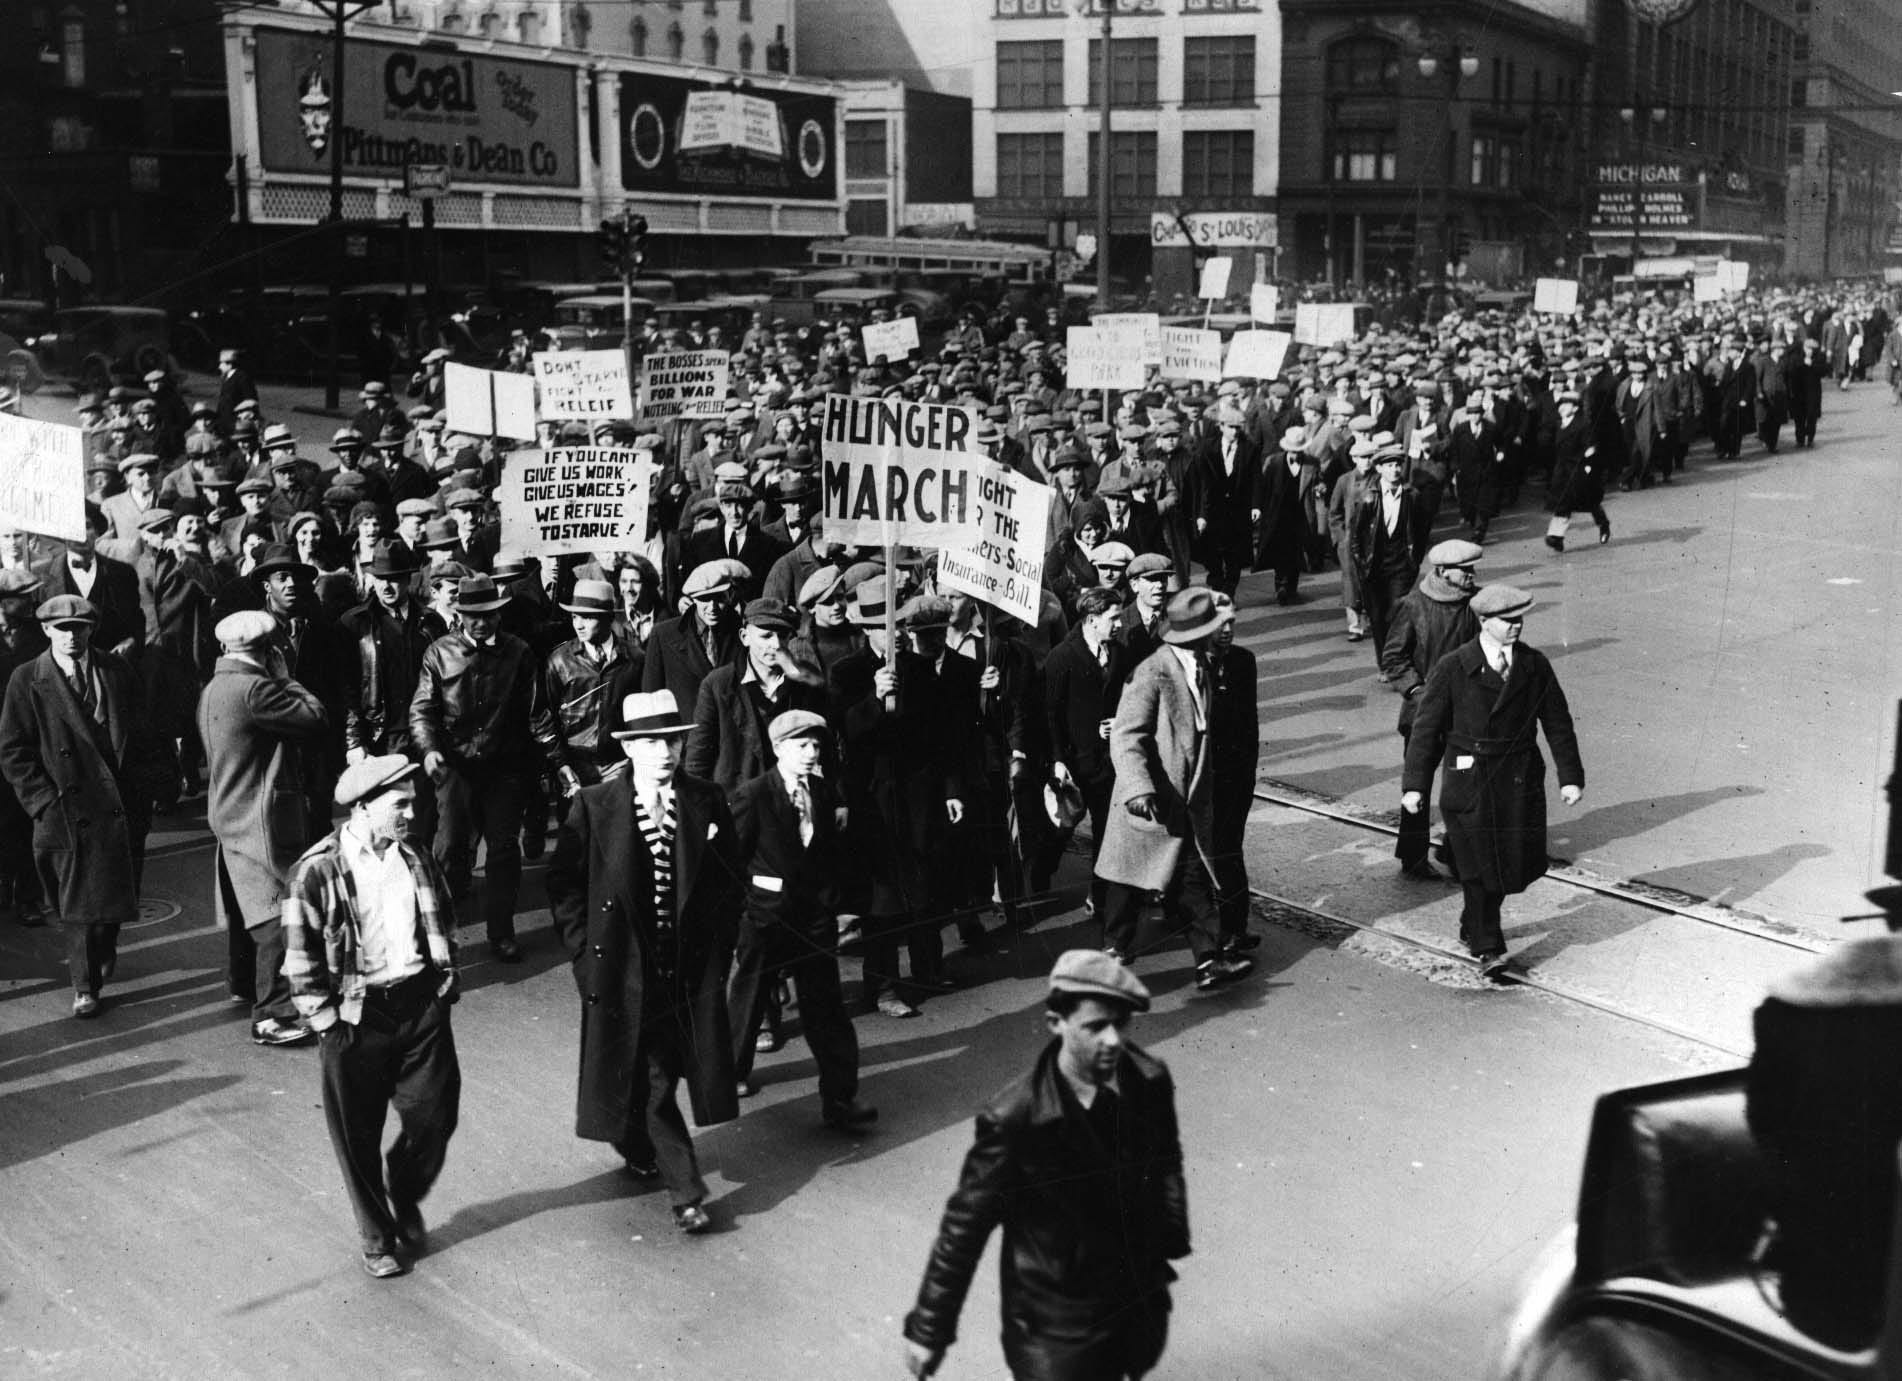 A crowd of unemployed demonstrate in downtown Detroit,